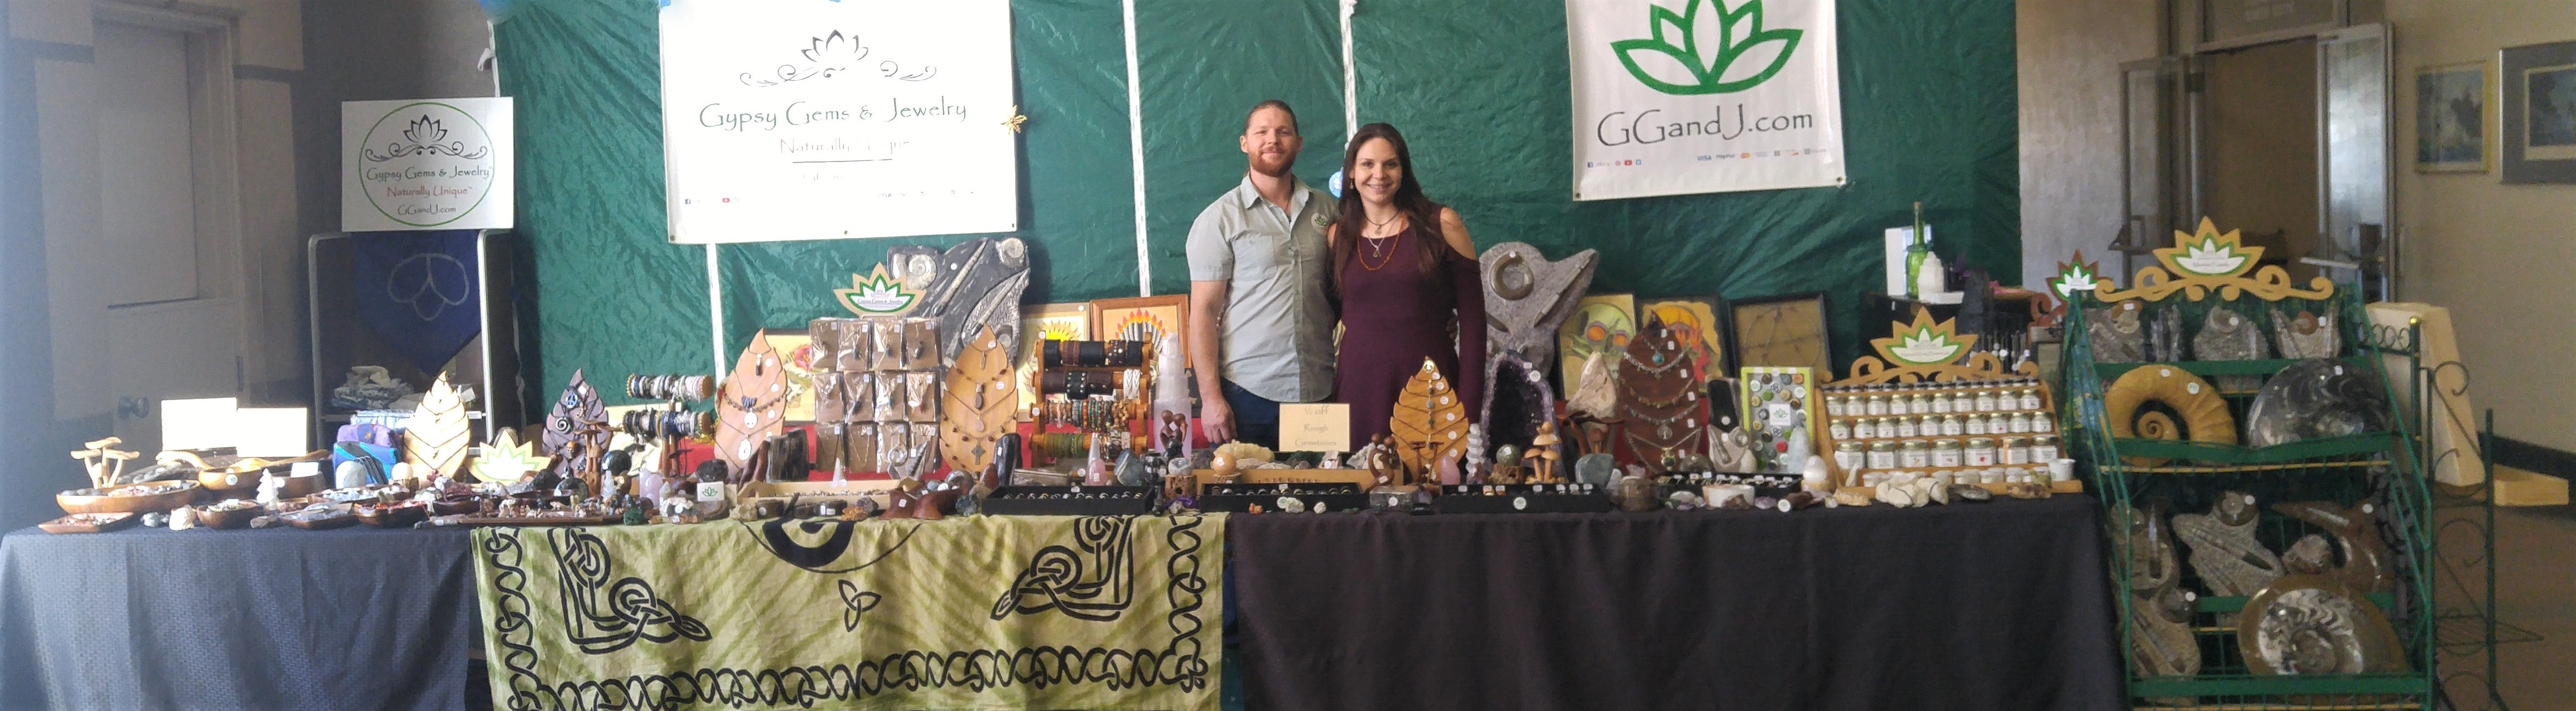 Santa Rosa Veterans Building Gypsy Gems Featured Booth